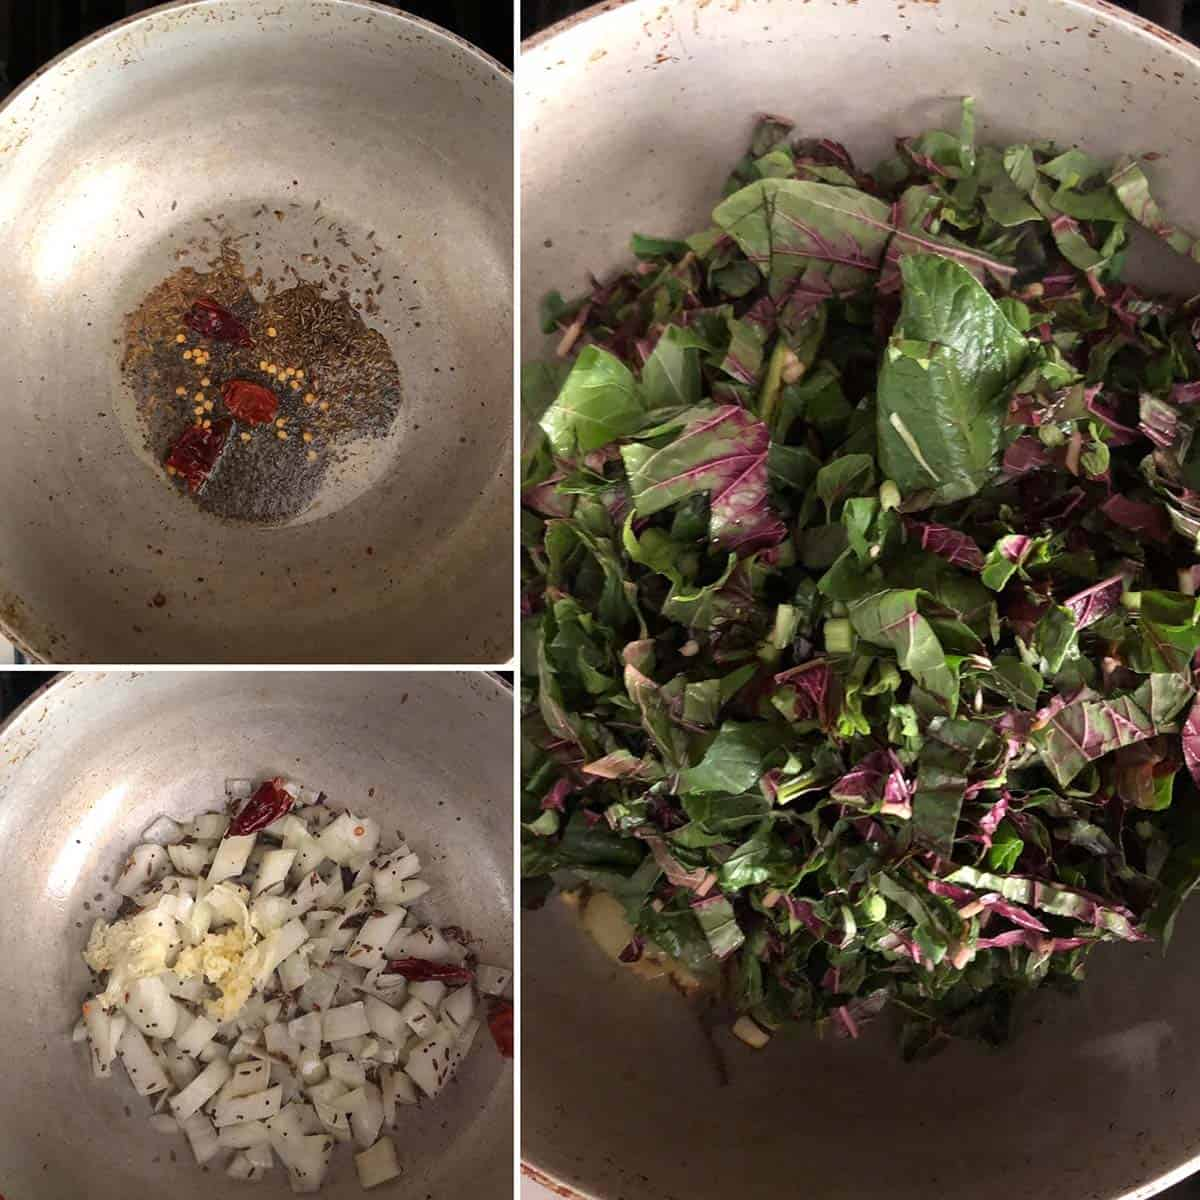 Step by step photos showing the cooking of onion, garlic and chopped greens